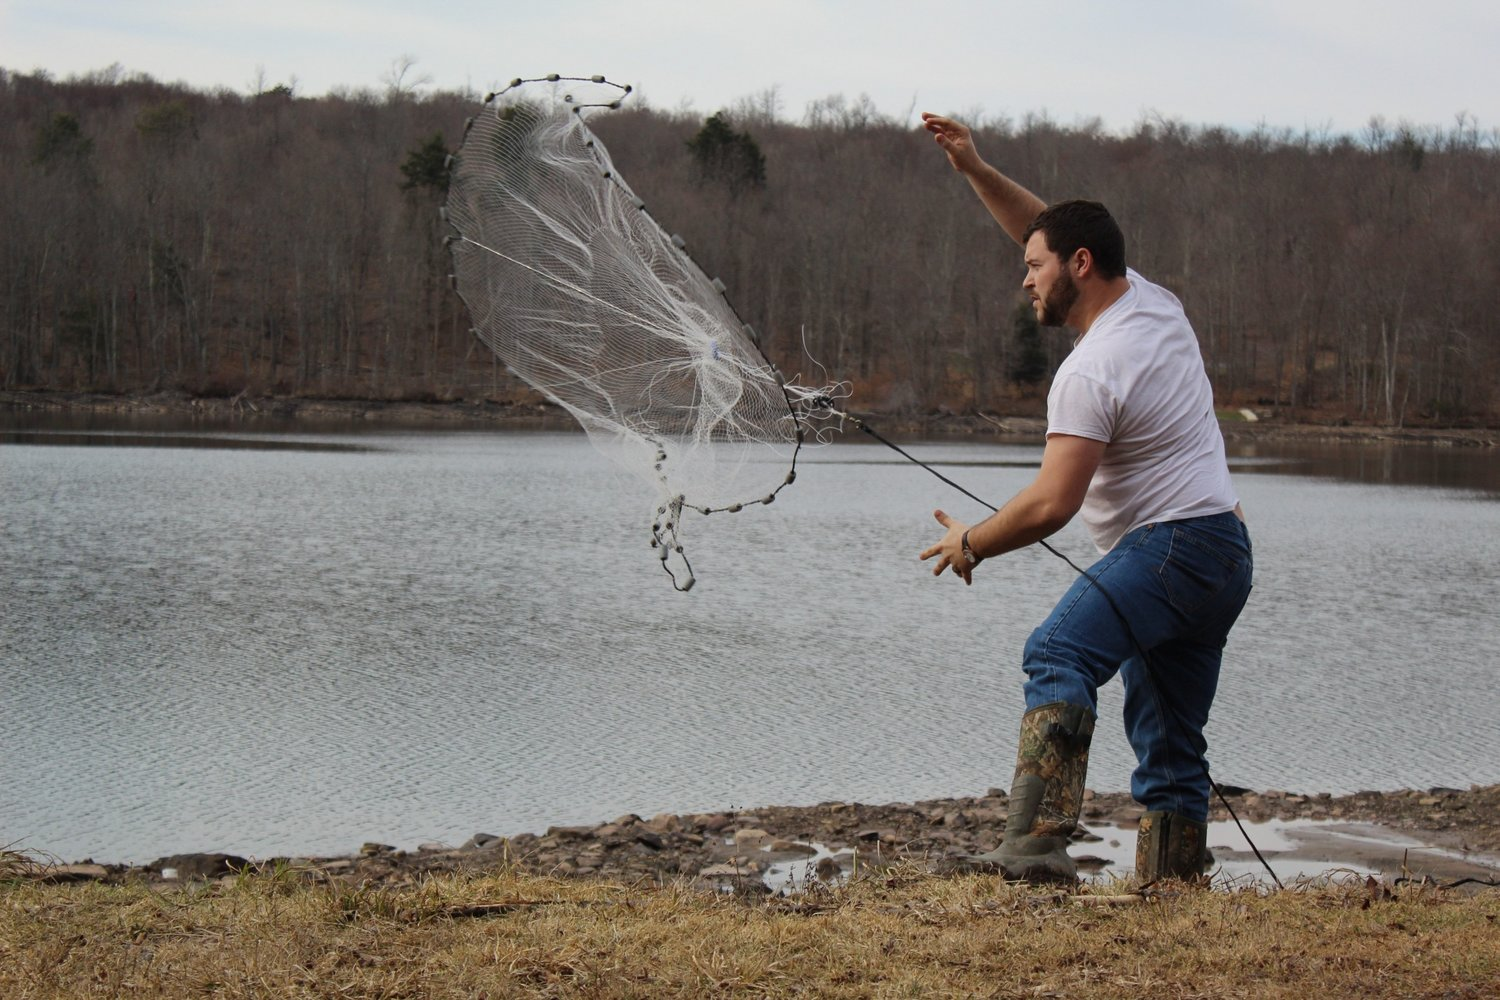 Throwing a cast net takes lots of practice, but before you approach the water, be sure to know the rules.